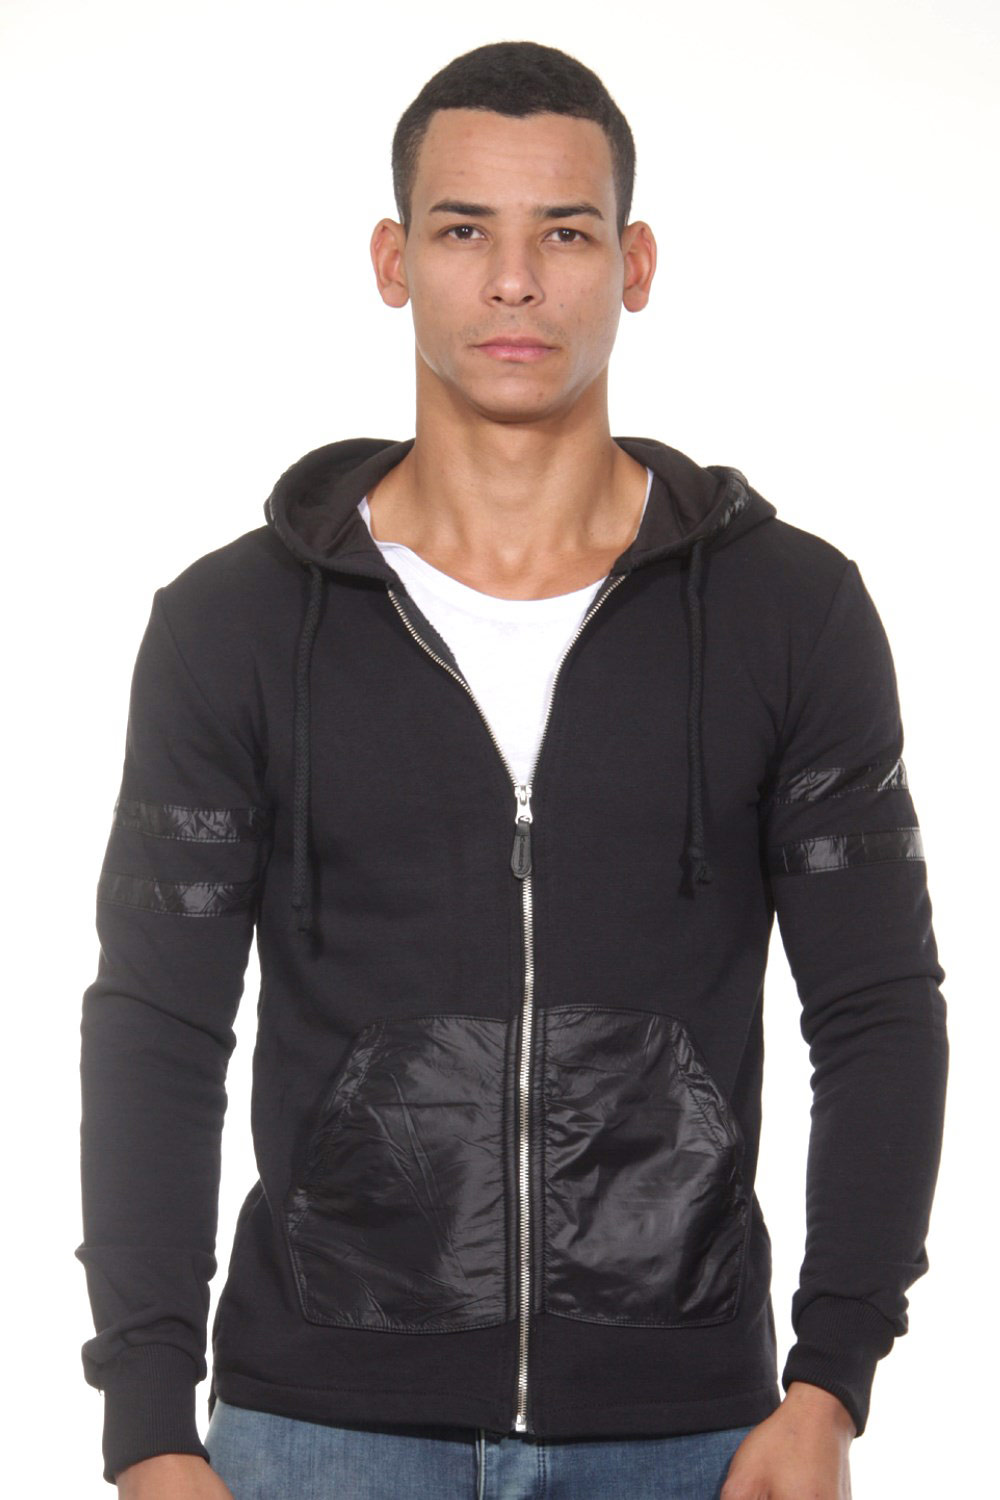 CATCH Sweatjacke auf oboy.de